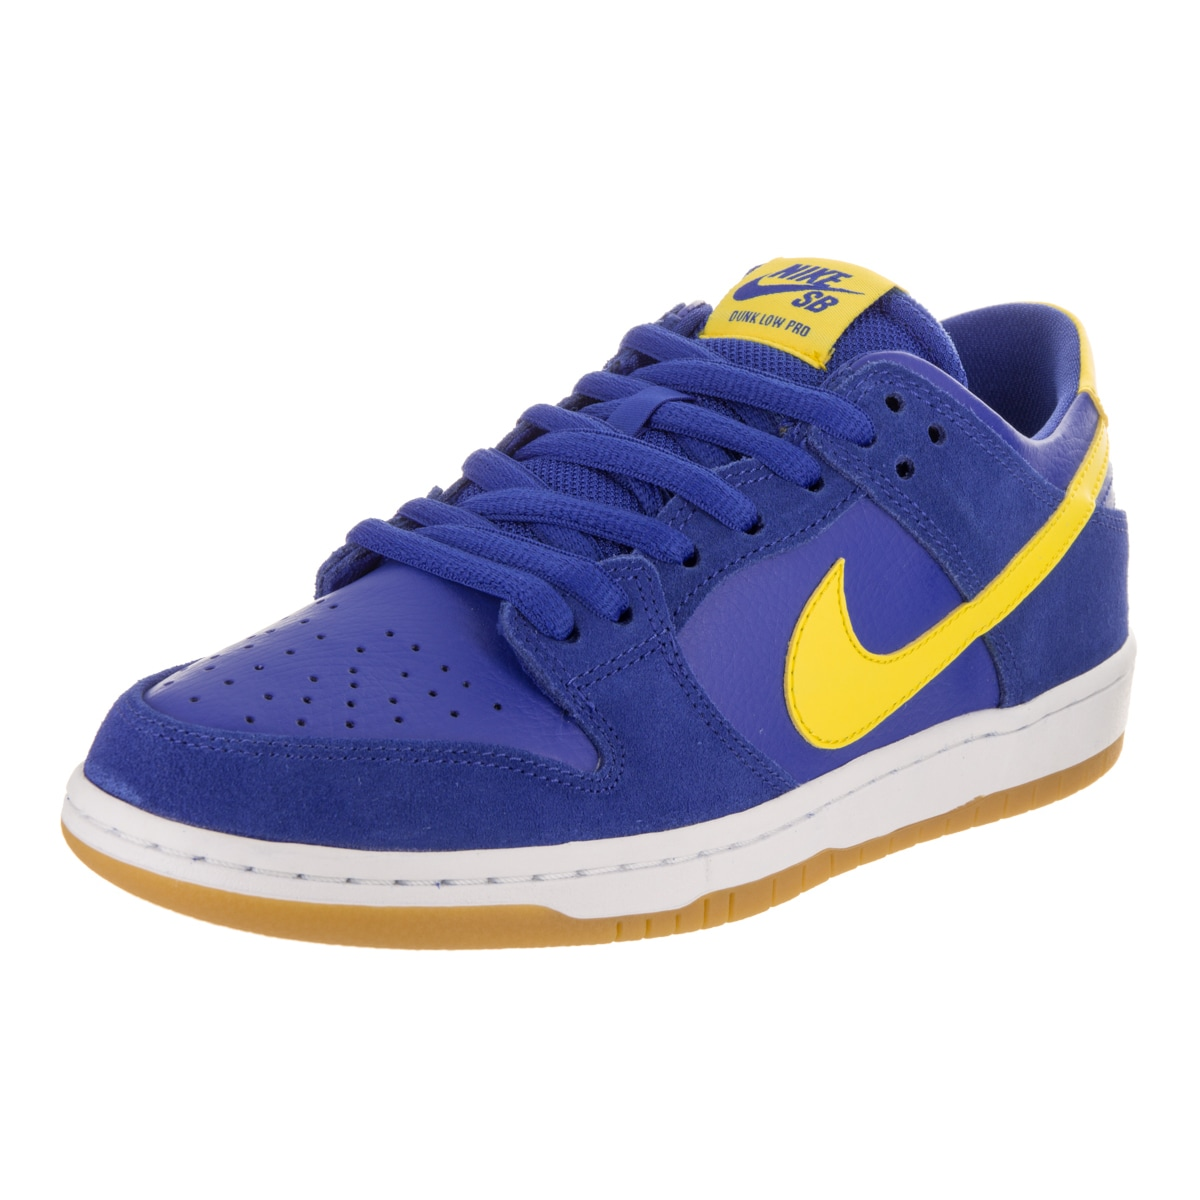 Nike Men's SB Zoom Dunk Low Pro Blue Leather Skate Shoes (9)